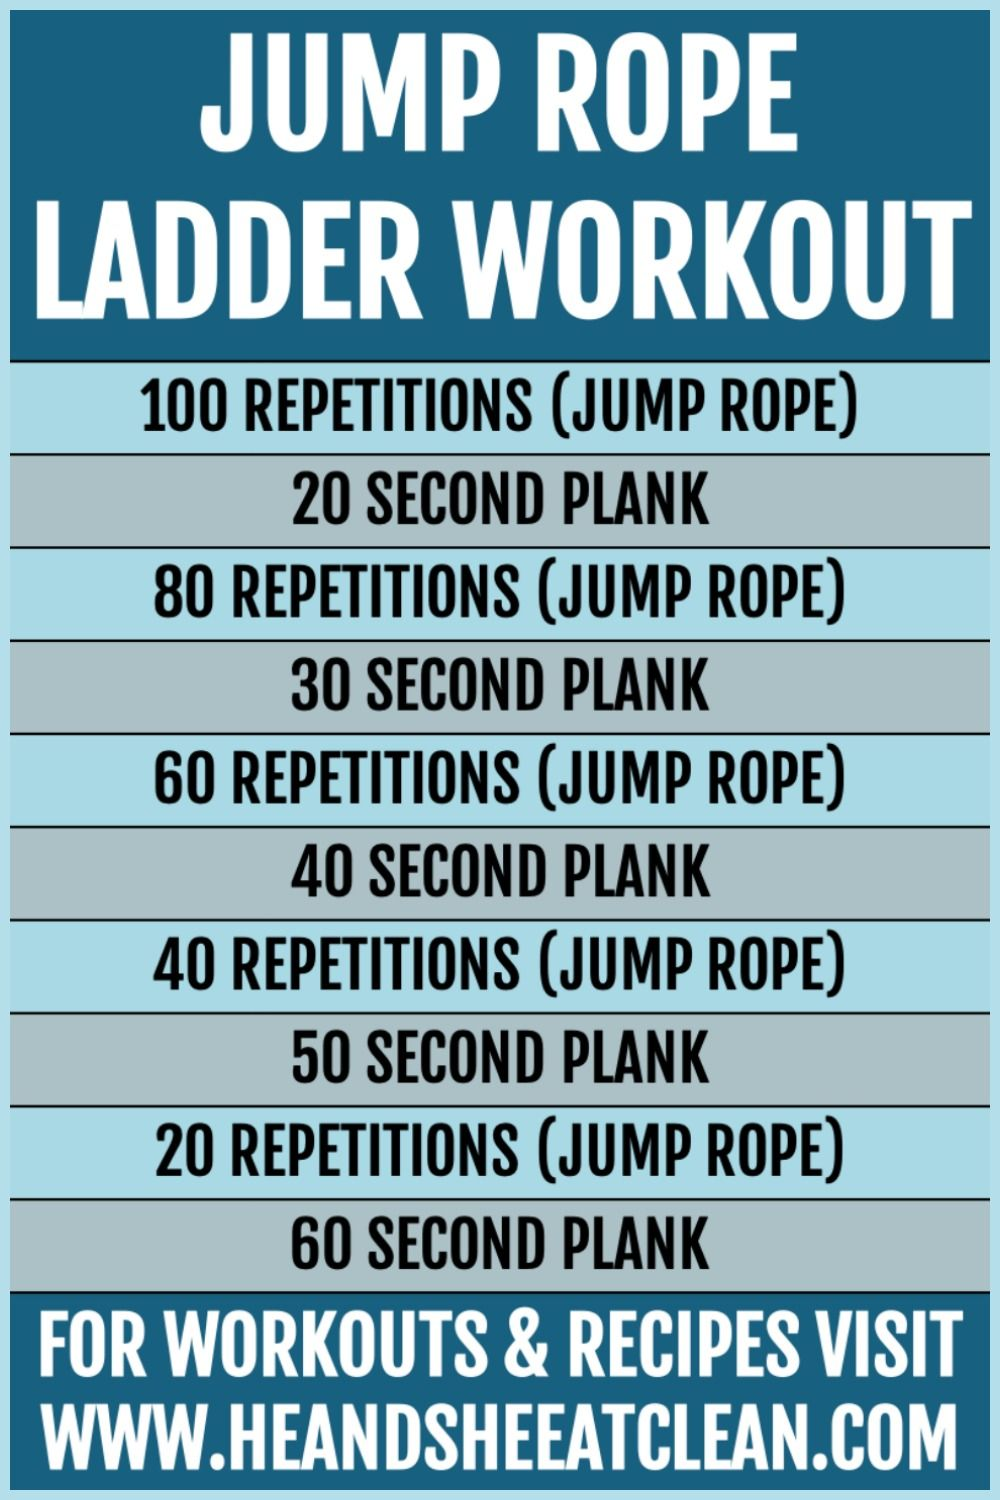 Jump Rope Ladder Workout #workout #fitness #exercise #heandsheeatclean